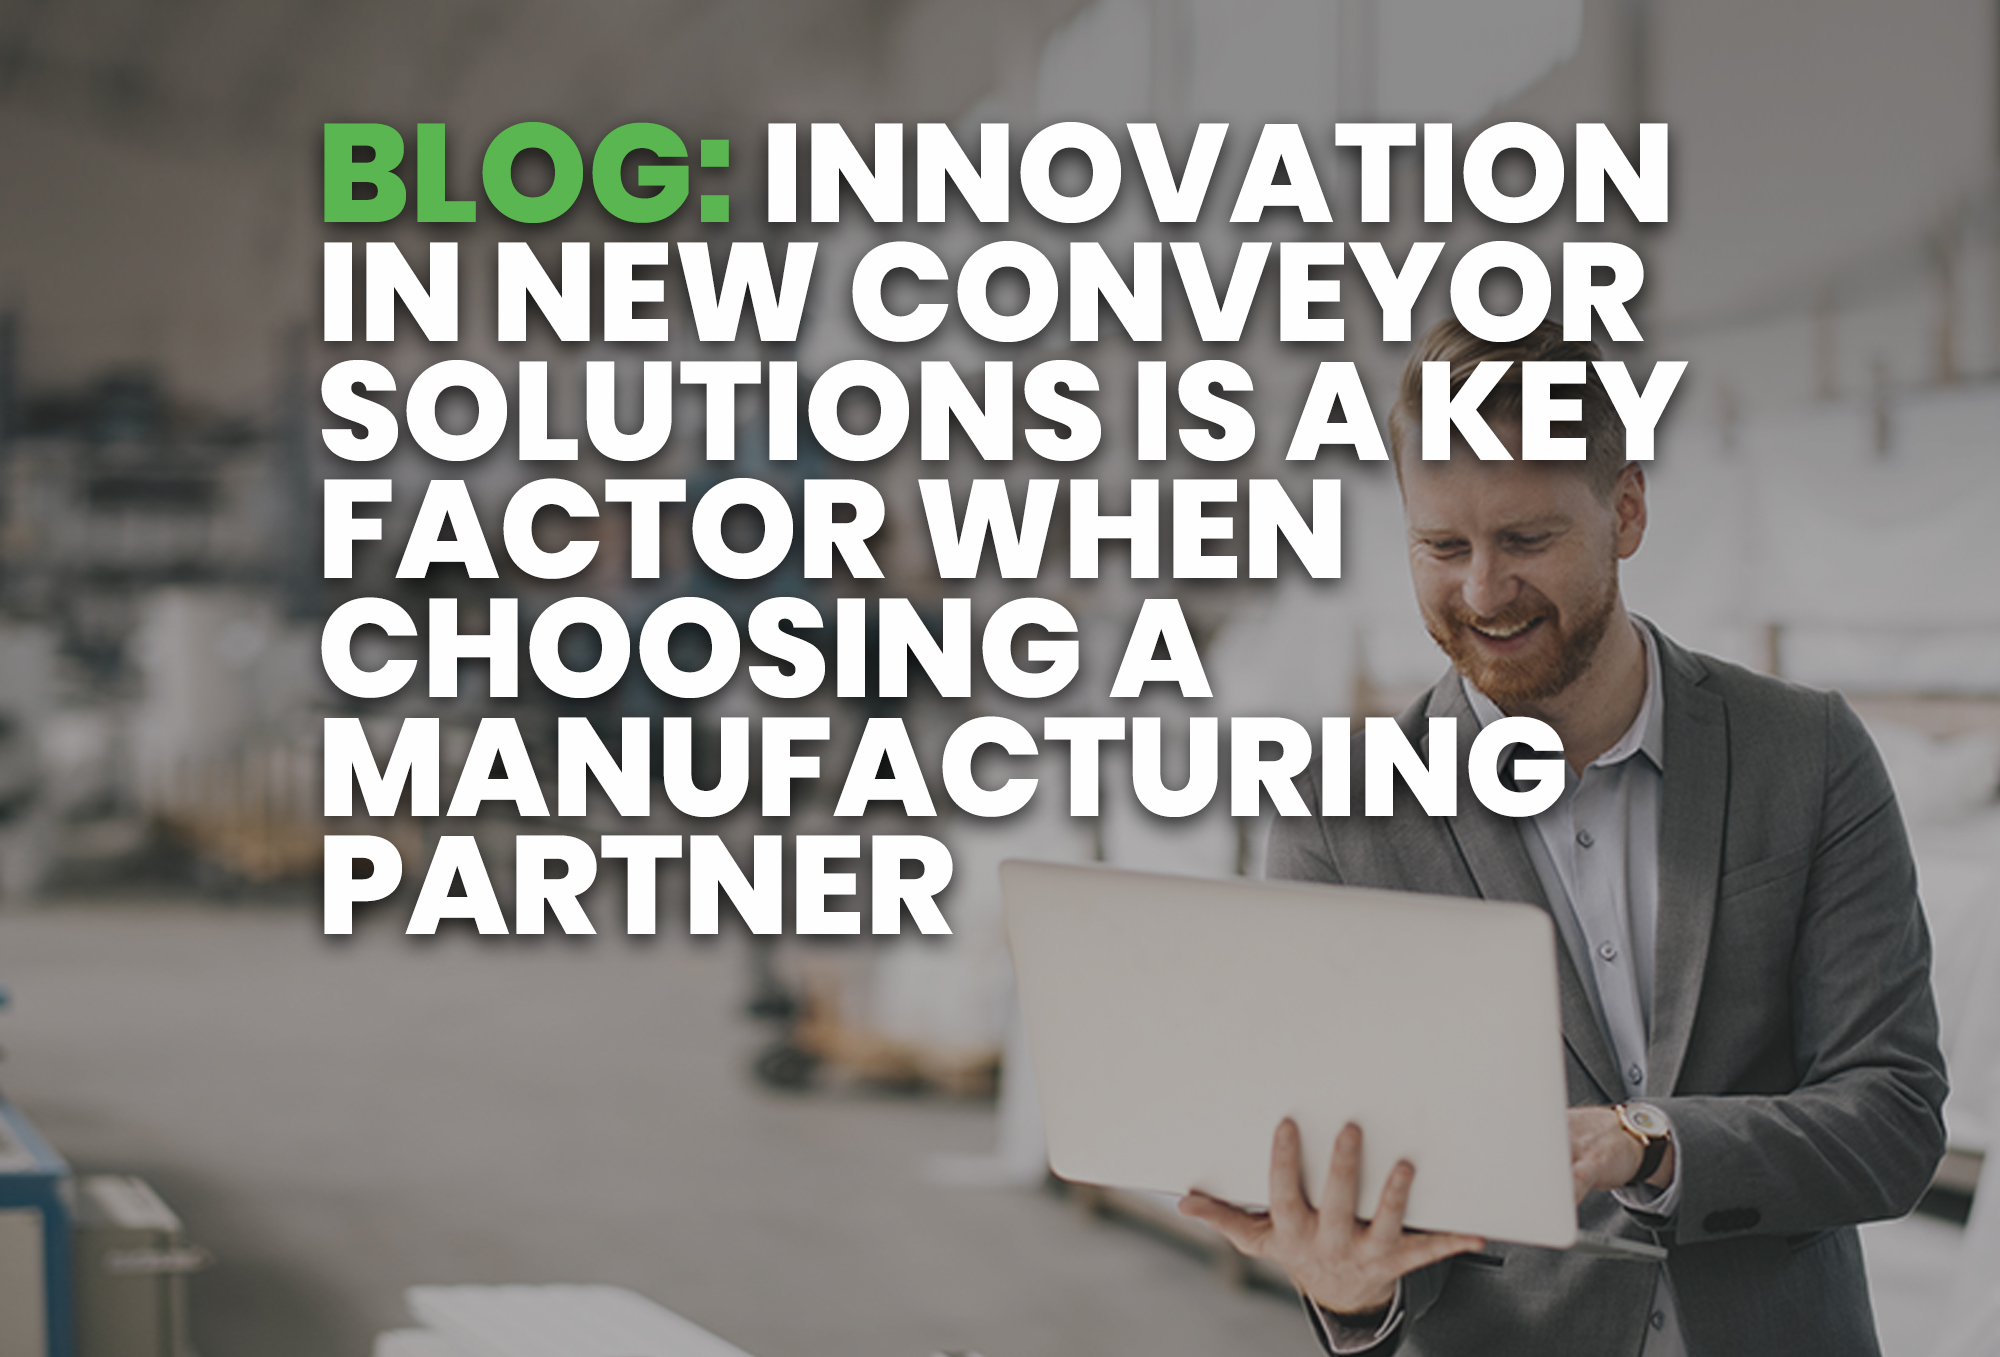 BLOG- Innovation in New Conveyor Solutions is a Key Factor When Choosing a Manufacturing Partner